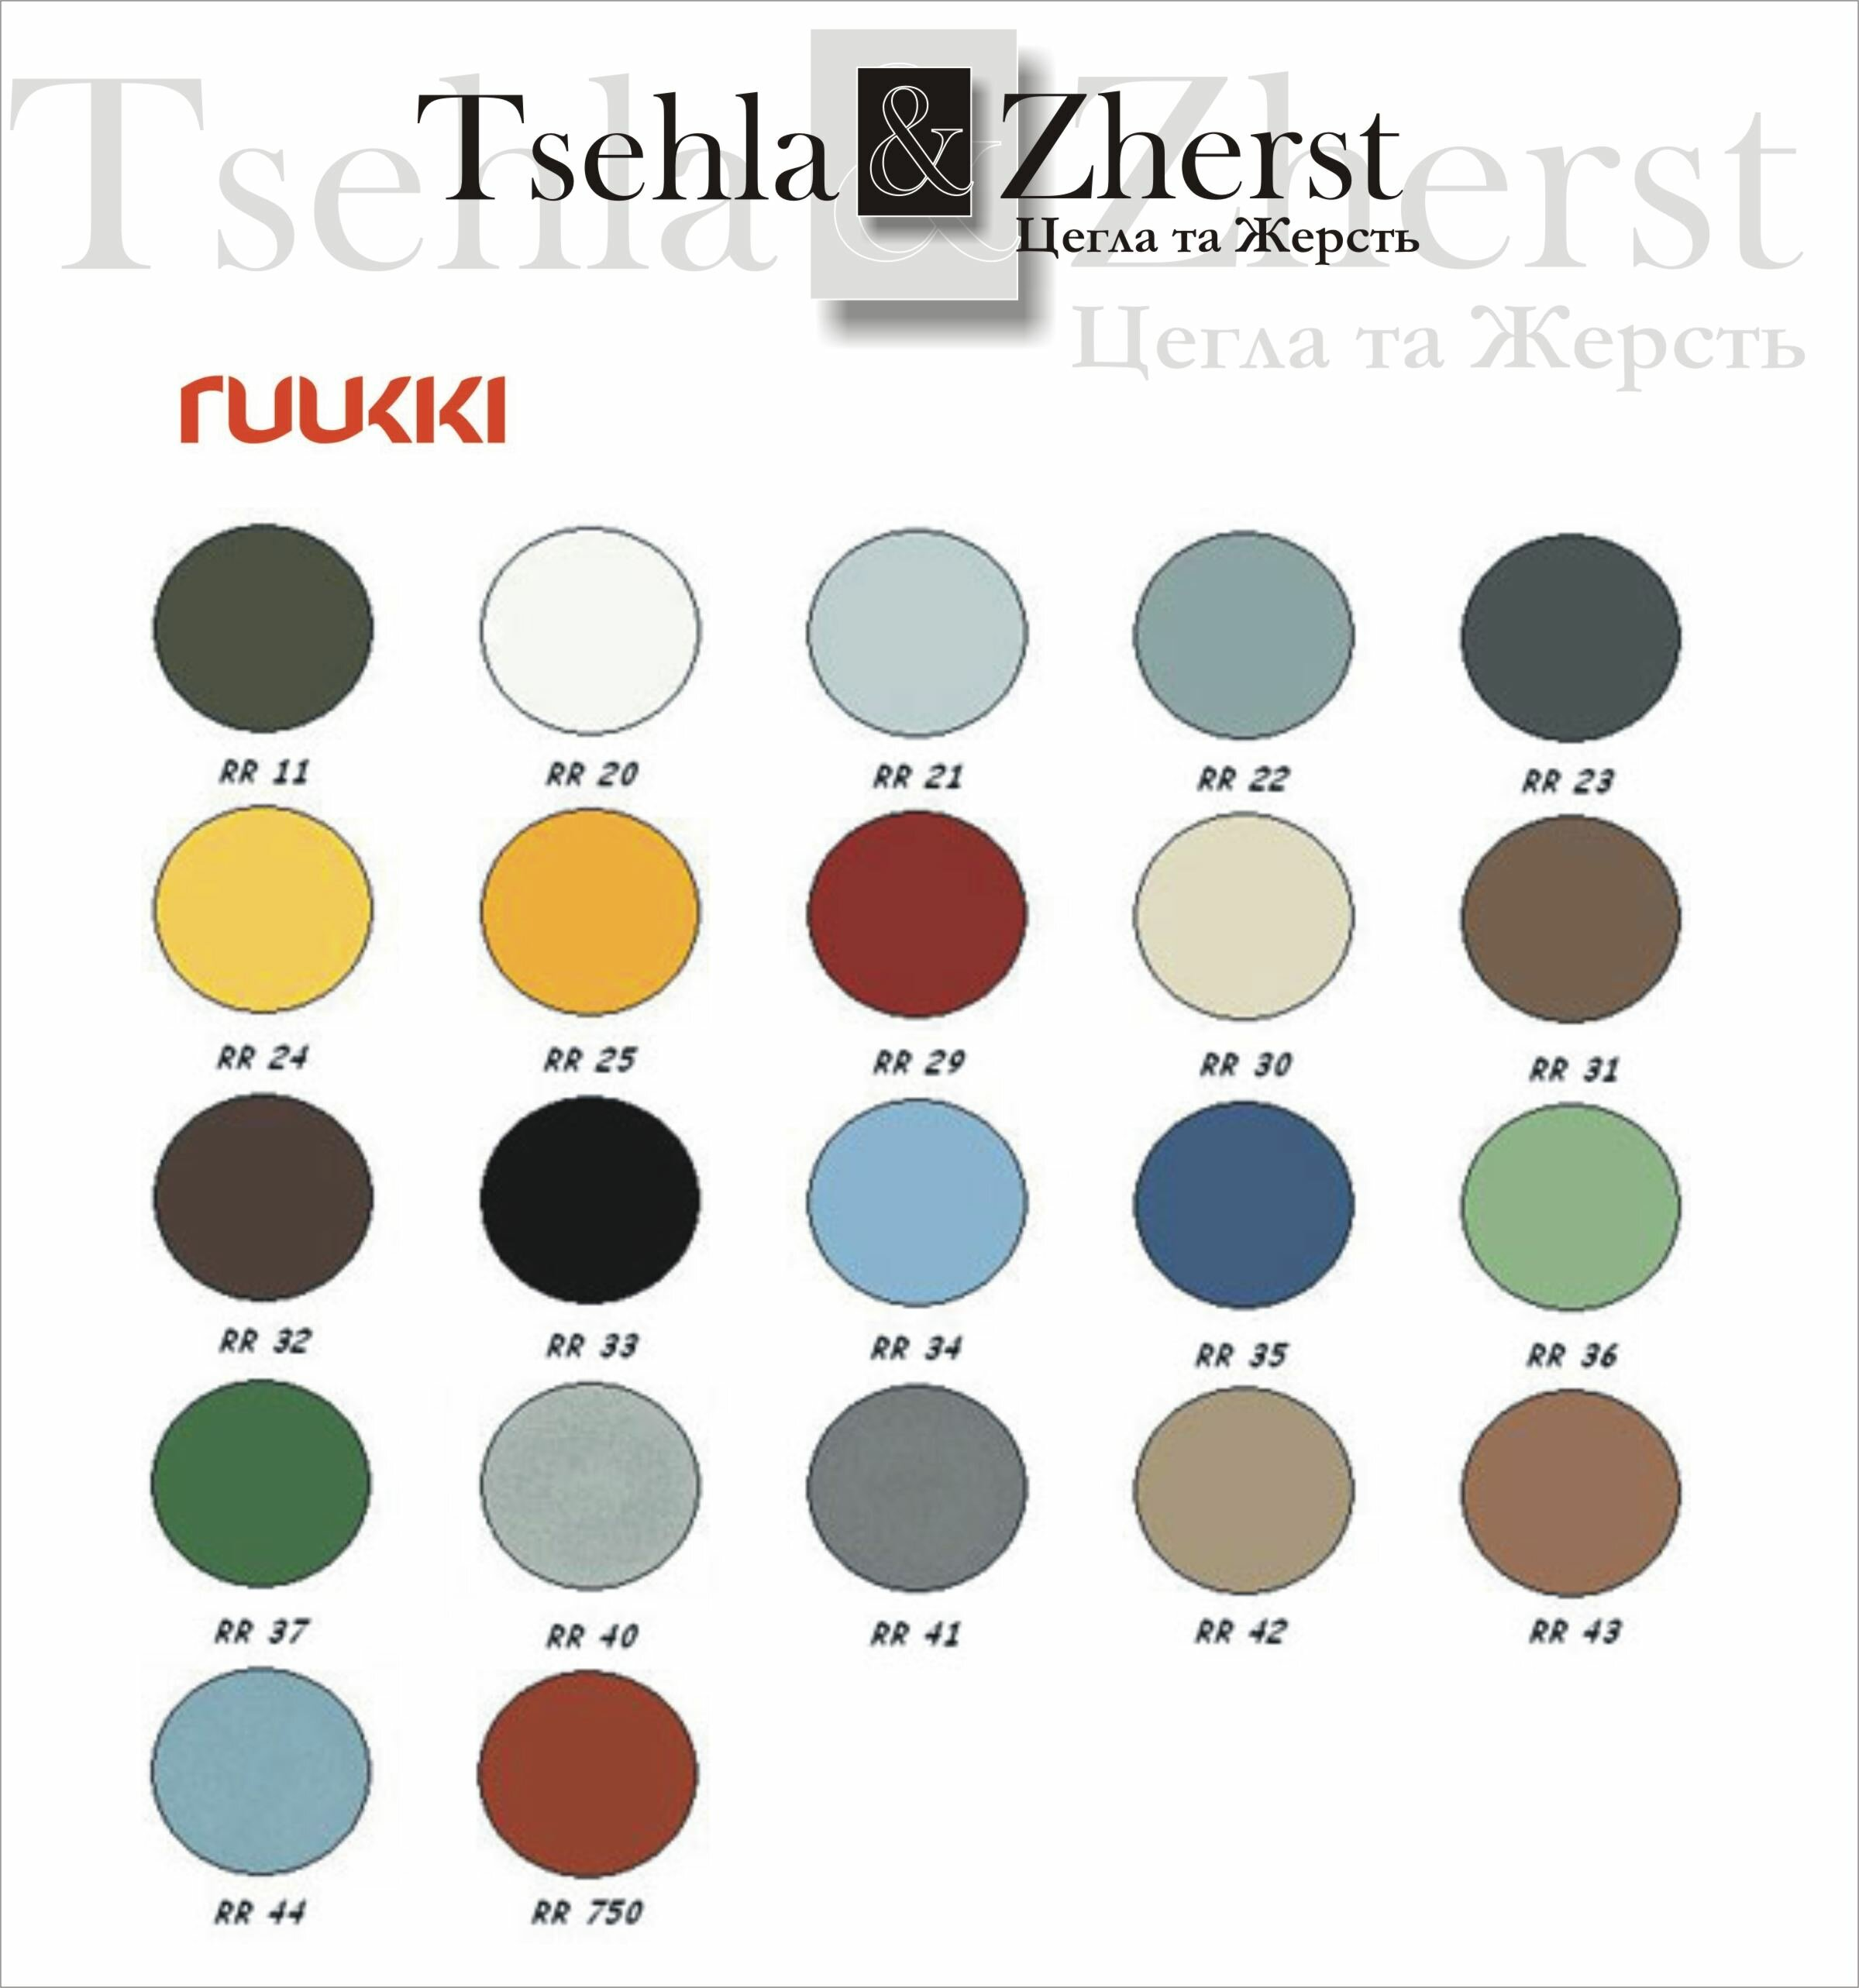 Ruukki colors